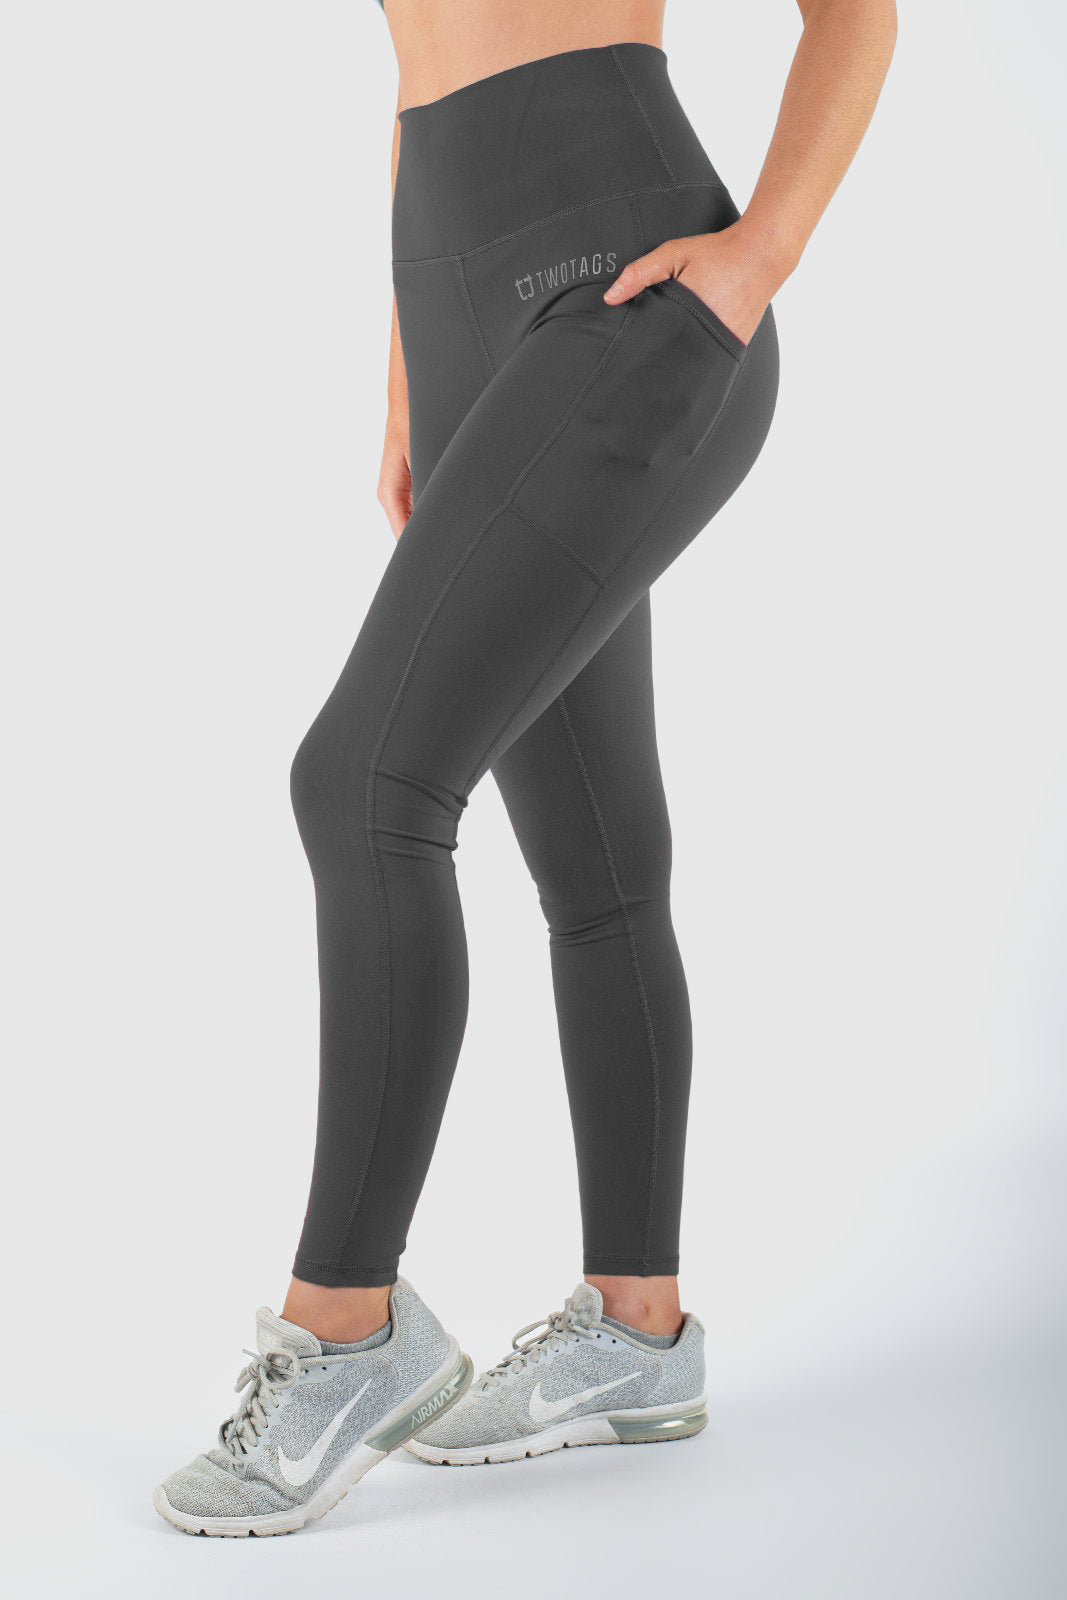 Twotags Ladies Highwaisted Core V2 Leggings – Slate Grey